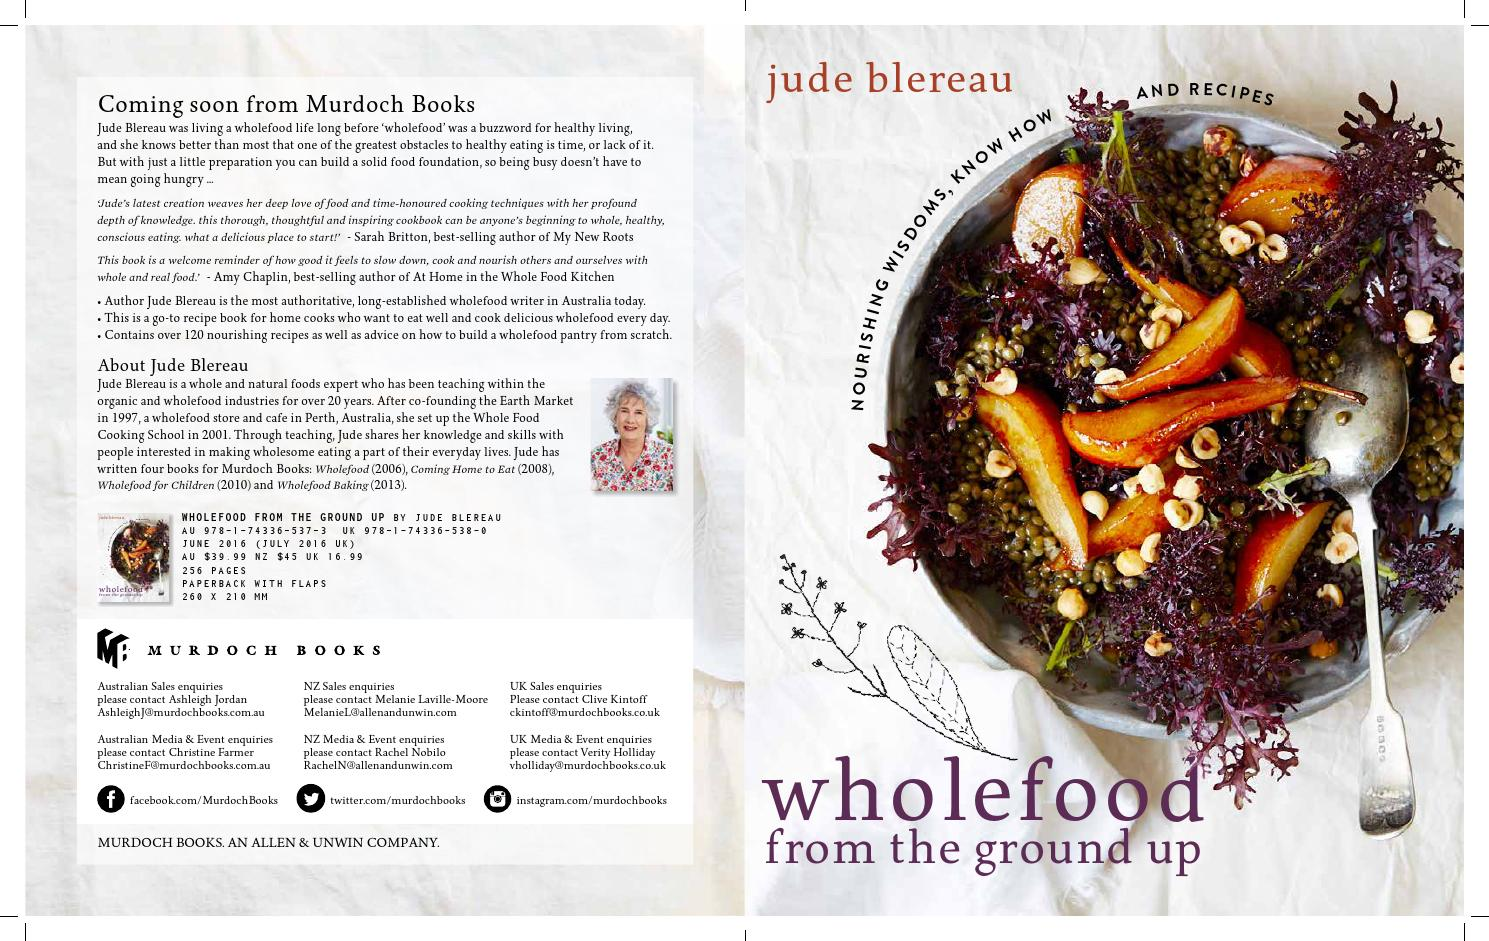 Wholefood from the ground up by jude blereau june 2016 by murdoch wholefood from the ground up by jude blereau june 2016 by murdoch books issuu forumfinder Images